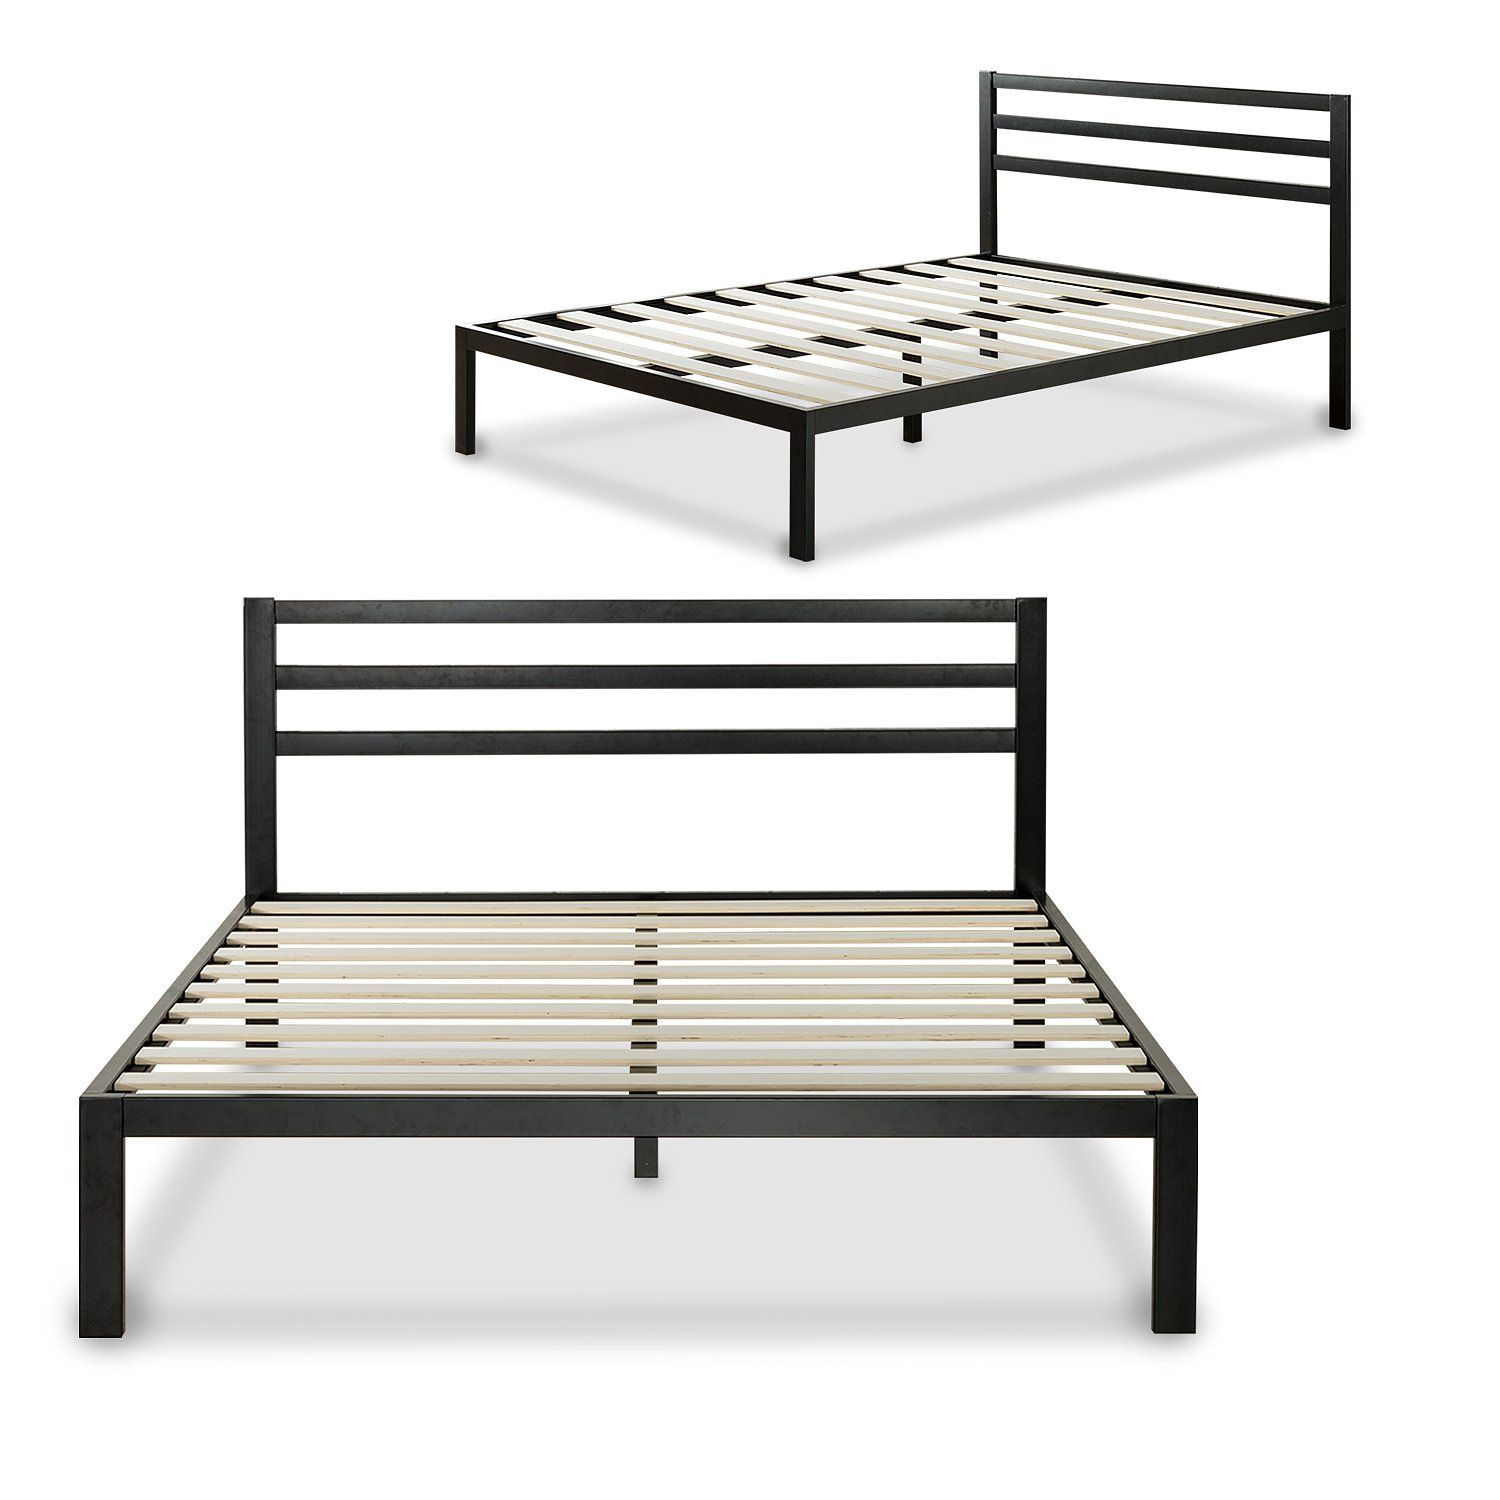 Bedroom Queen Zinus Modern Studio 14 Inch Platform 3000 Metal Bed Frame With Mattress Foundation And No Boxspring Needed From Fascinating